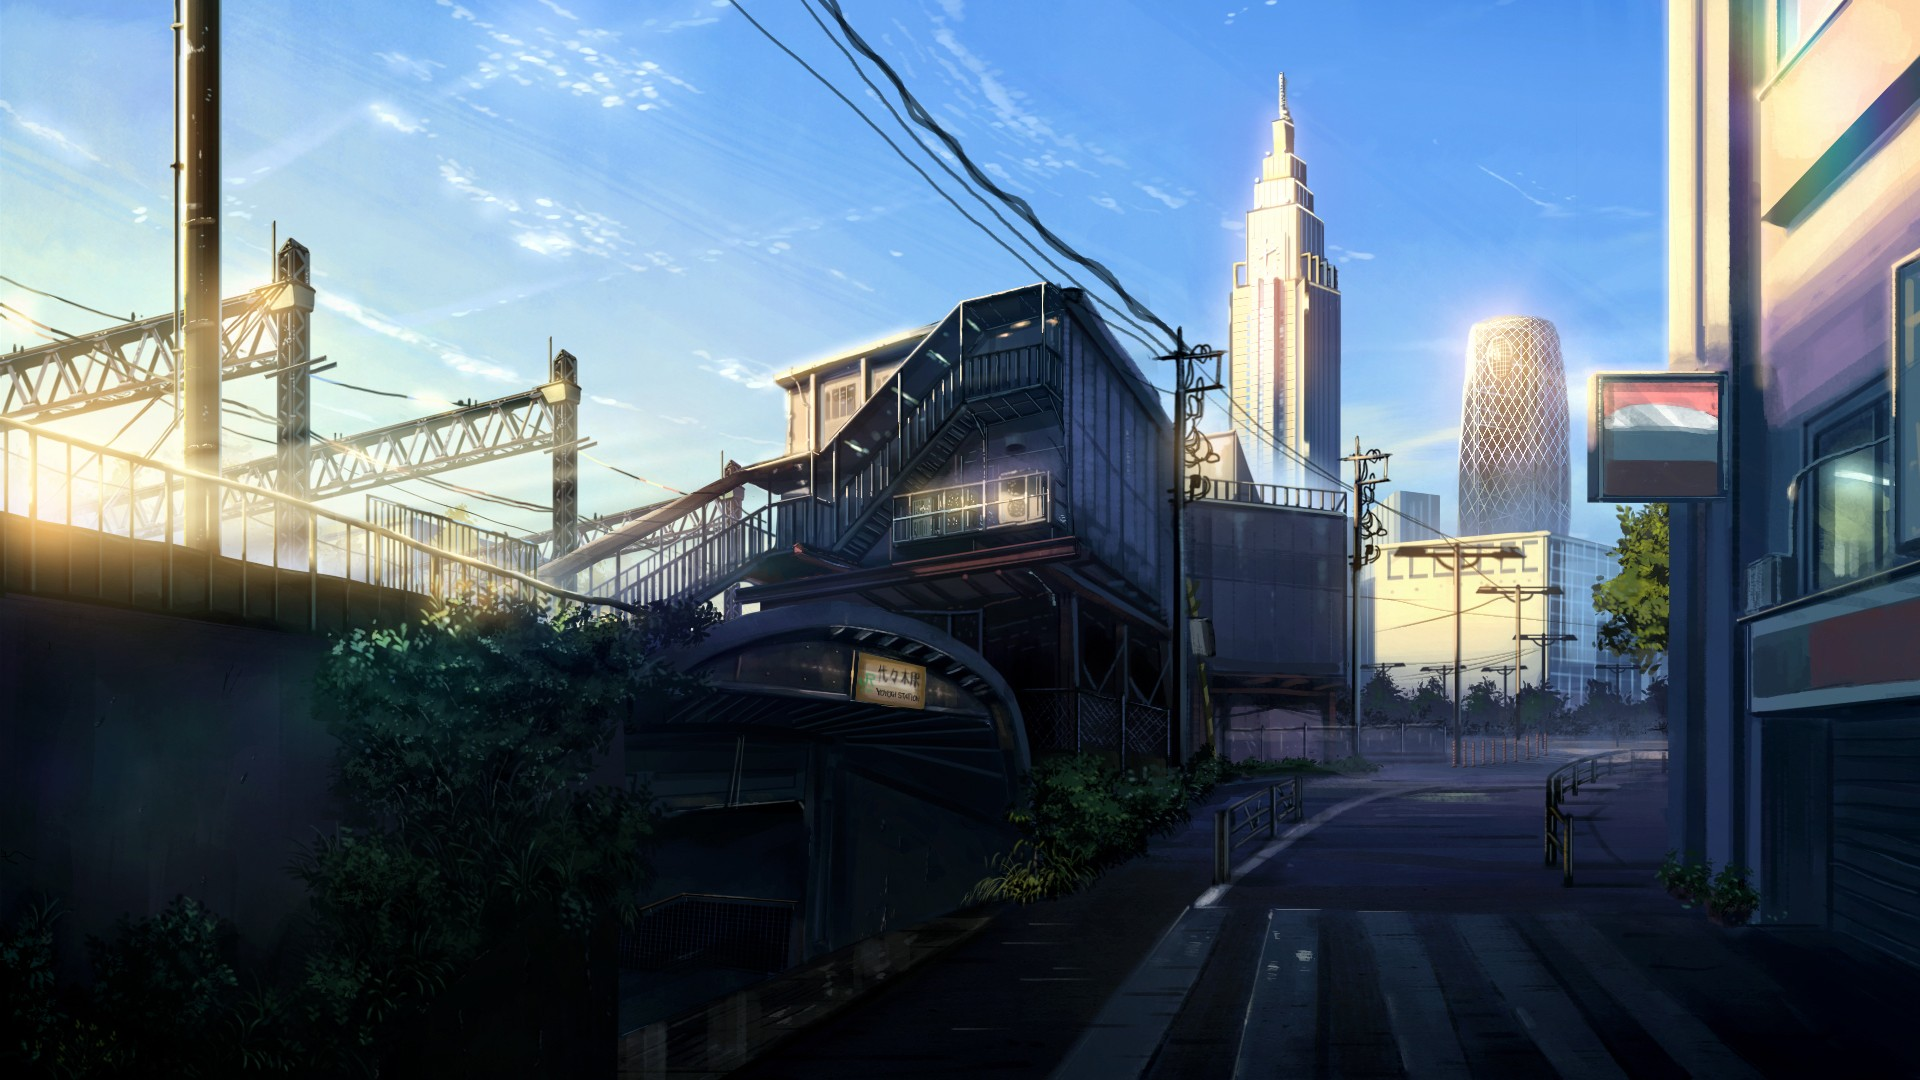 anime-city-road-architecture-1080P-1920%C3%971080-wallpaper-wp3602597